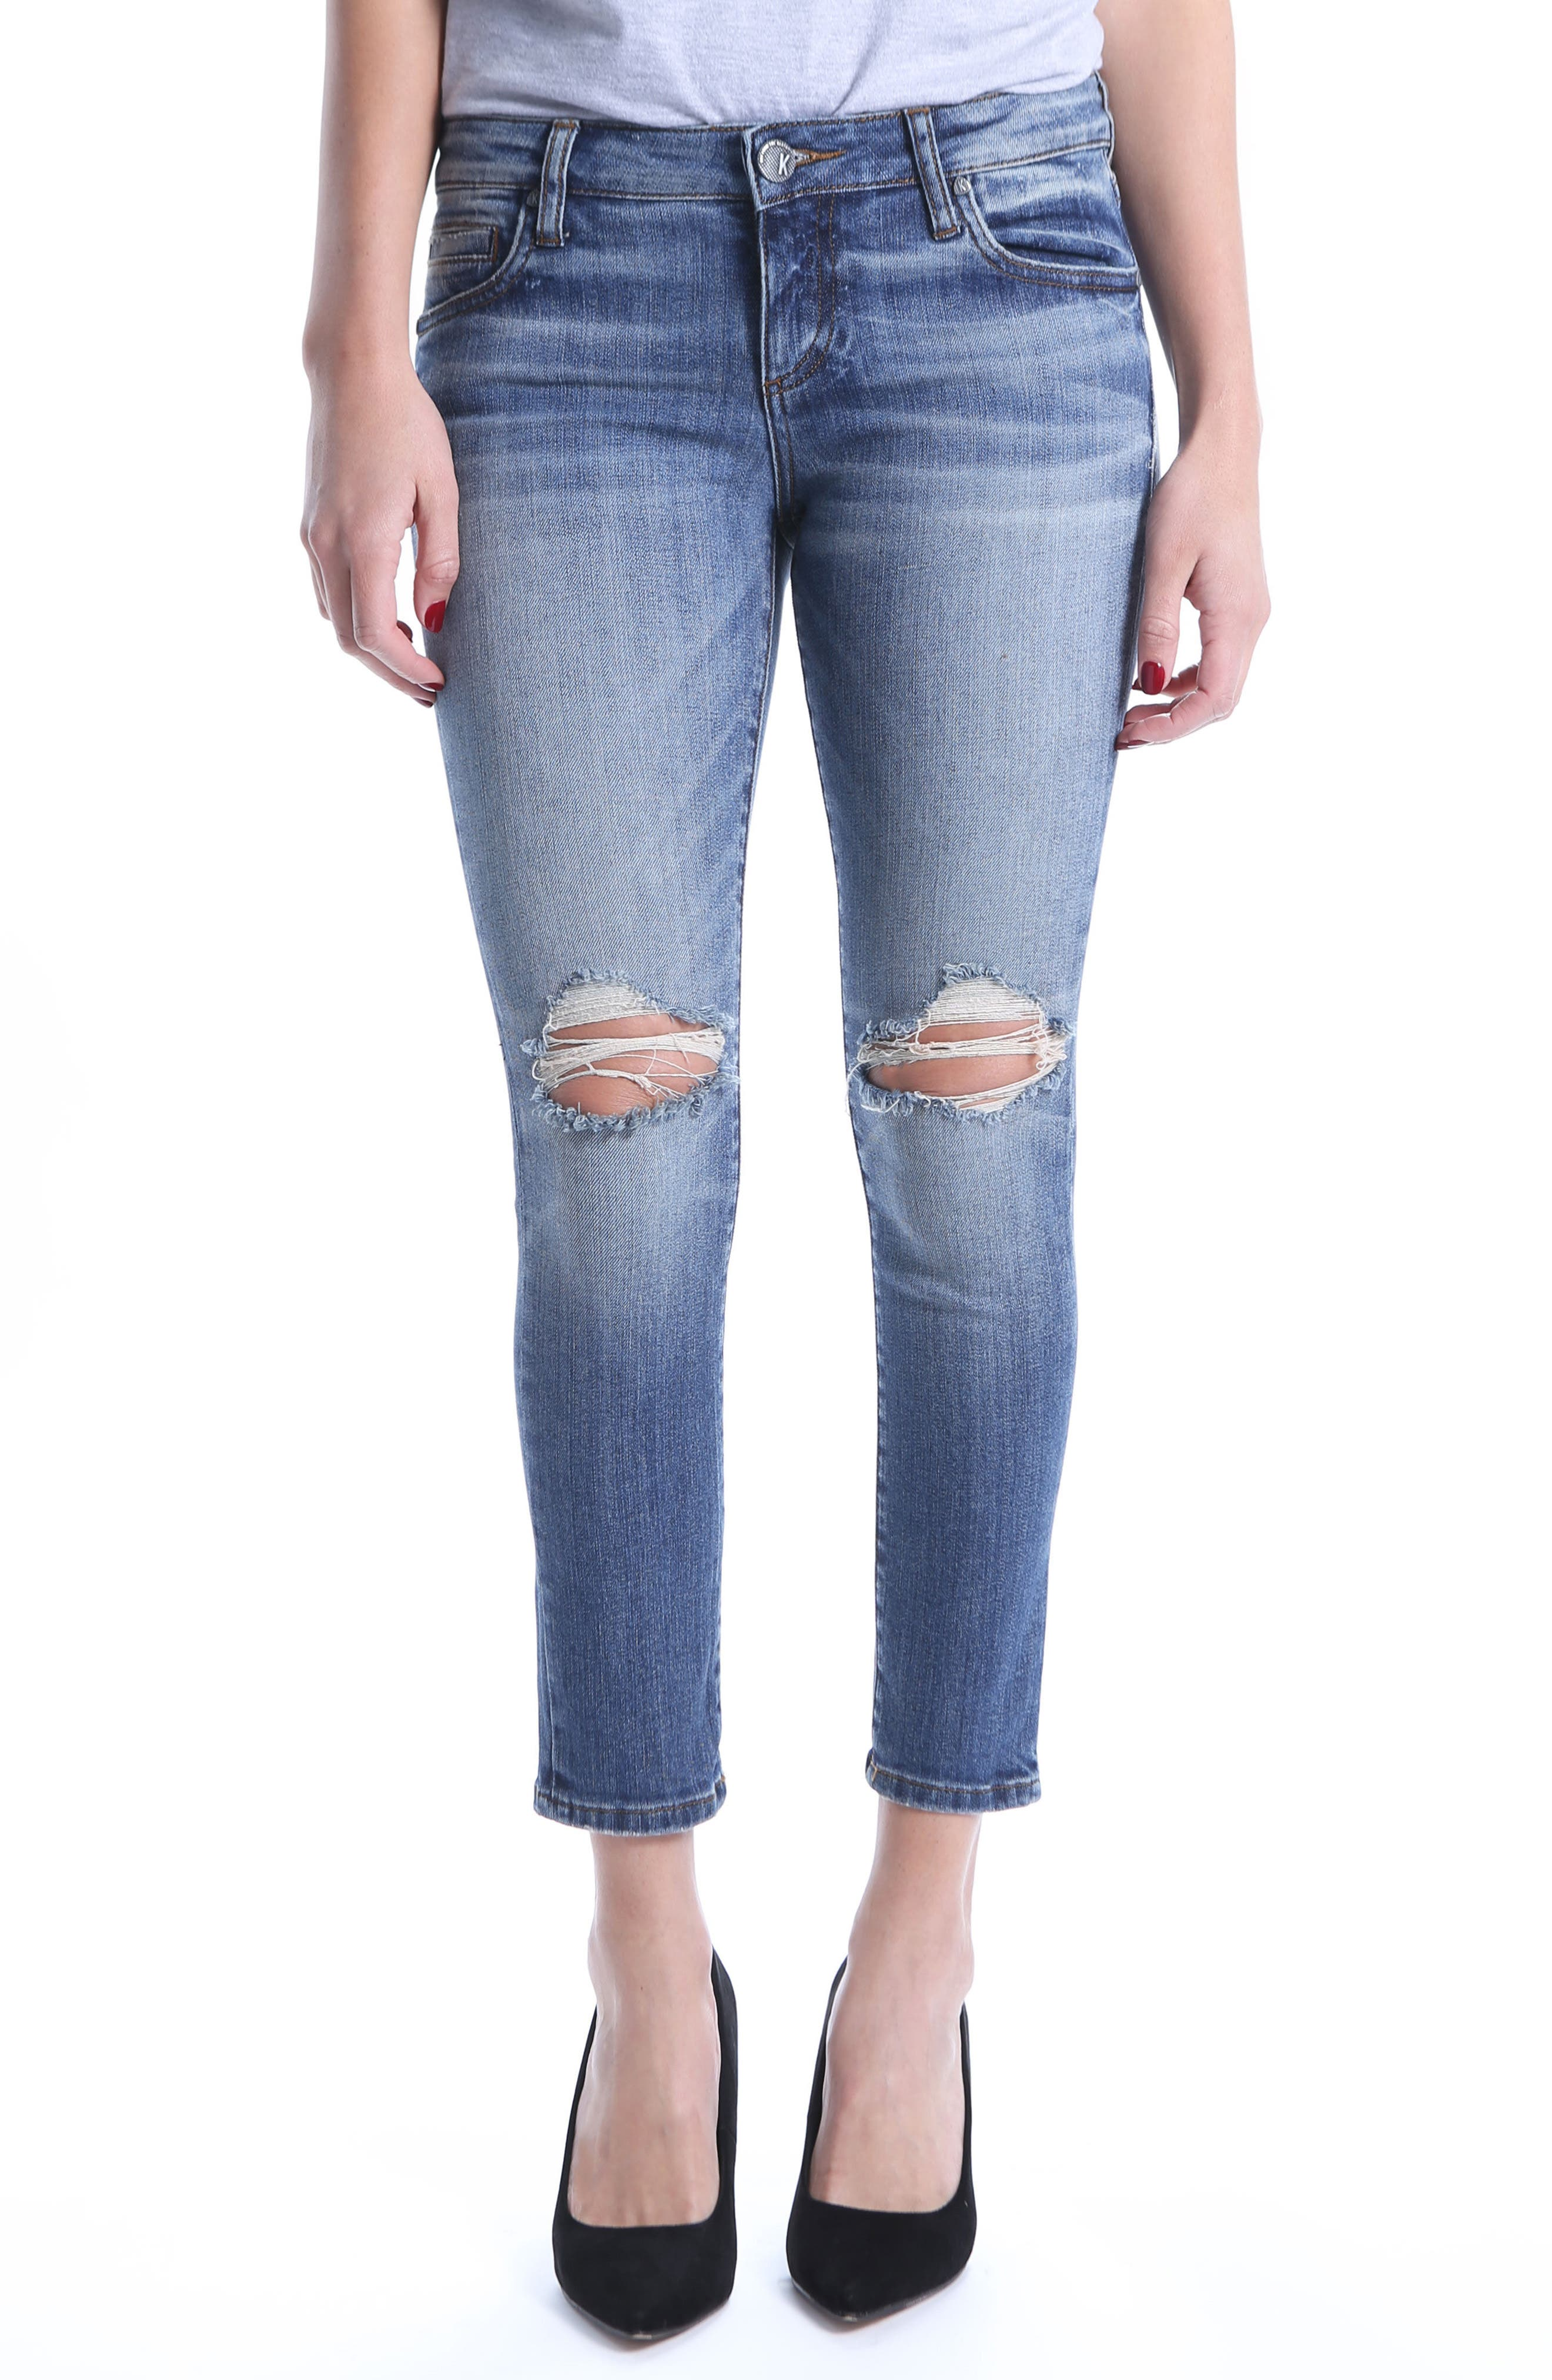 Catherine Ripped Straight Leg Ankle Jeans,                         Main,                         color, Increase